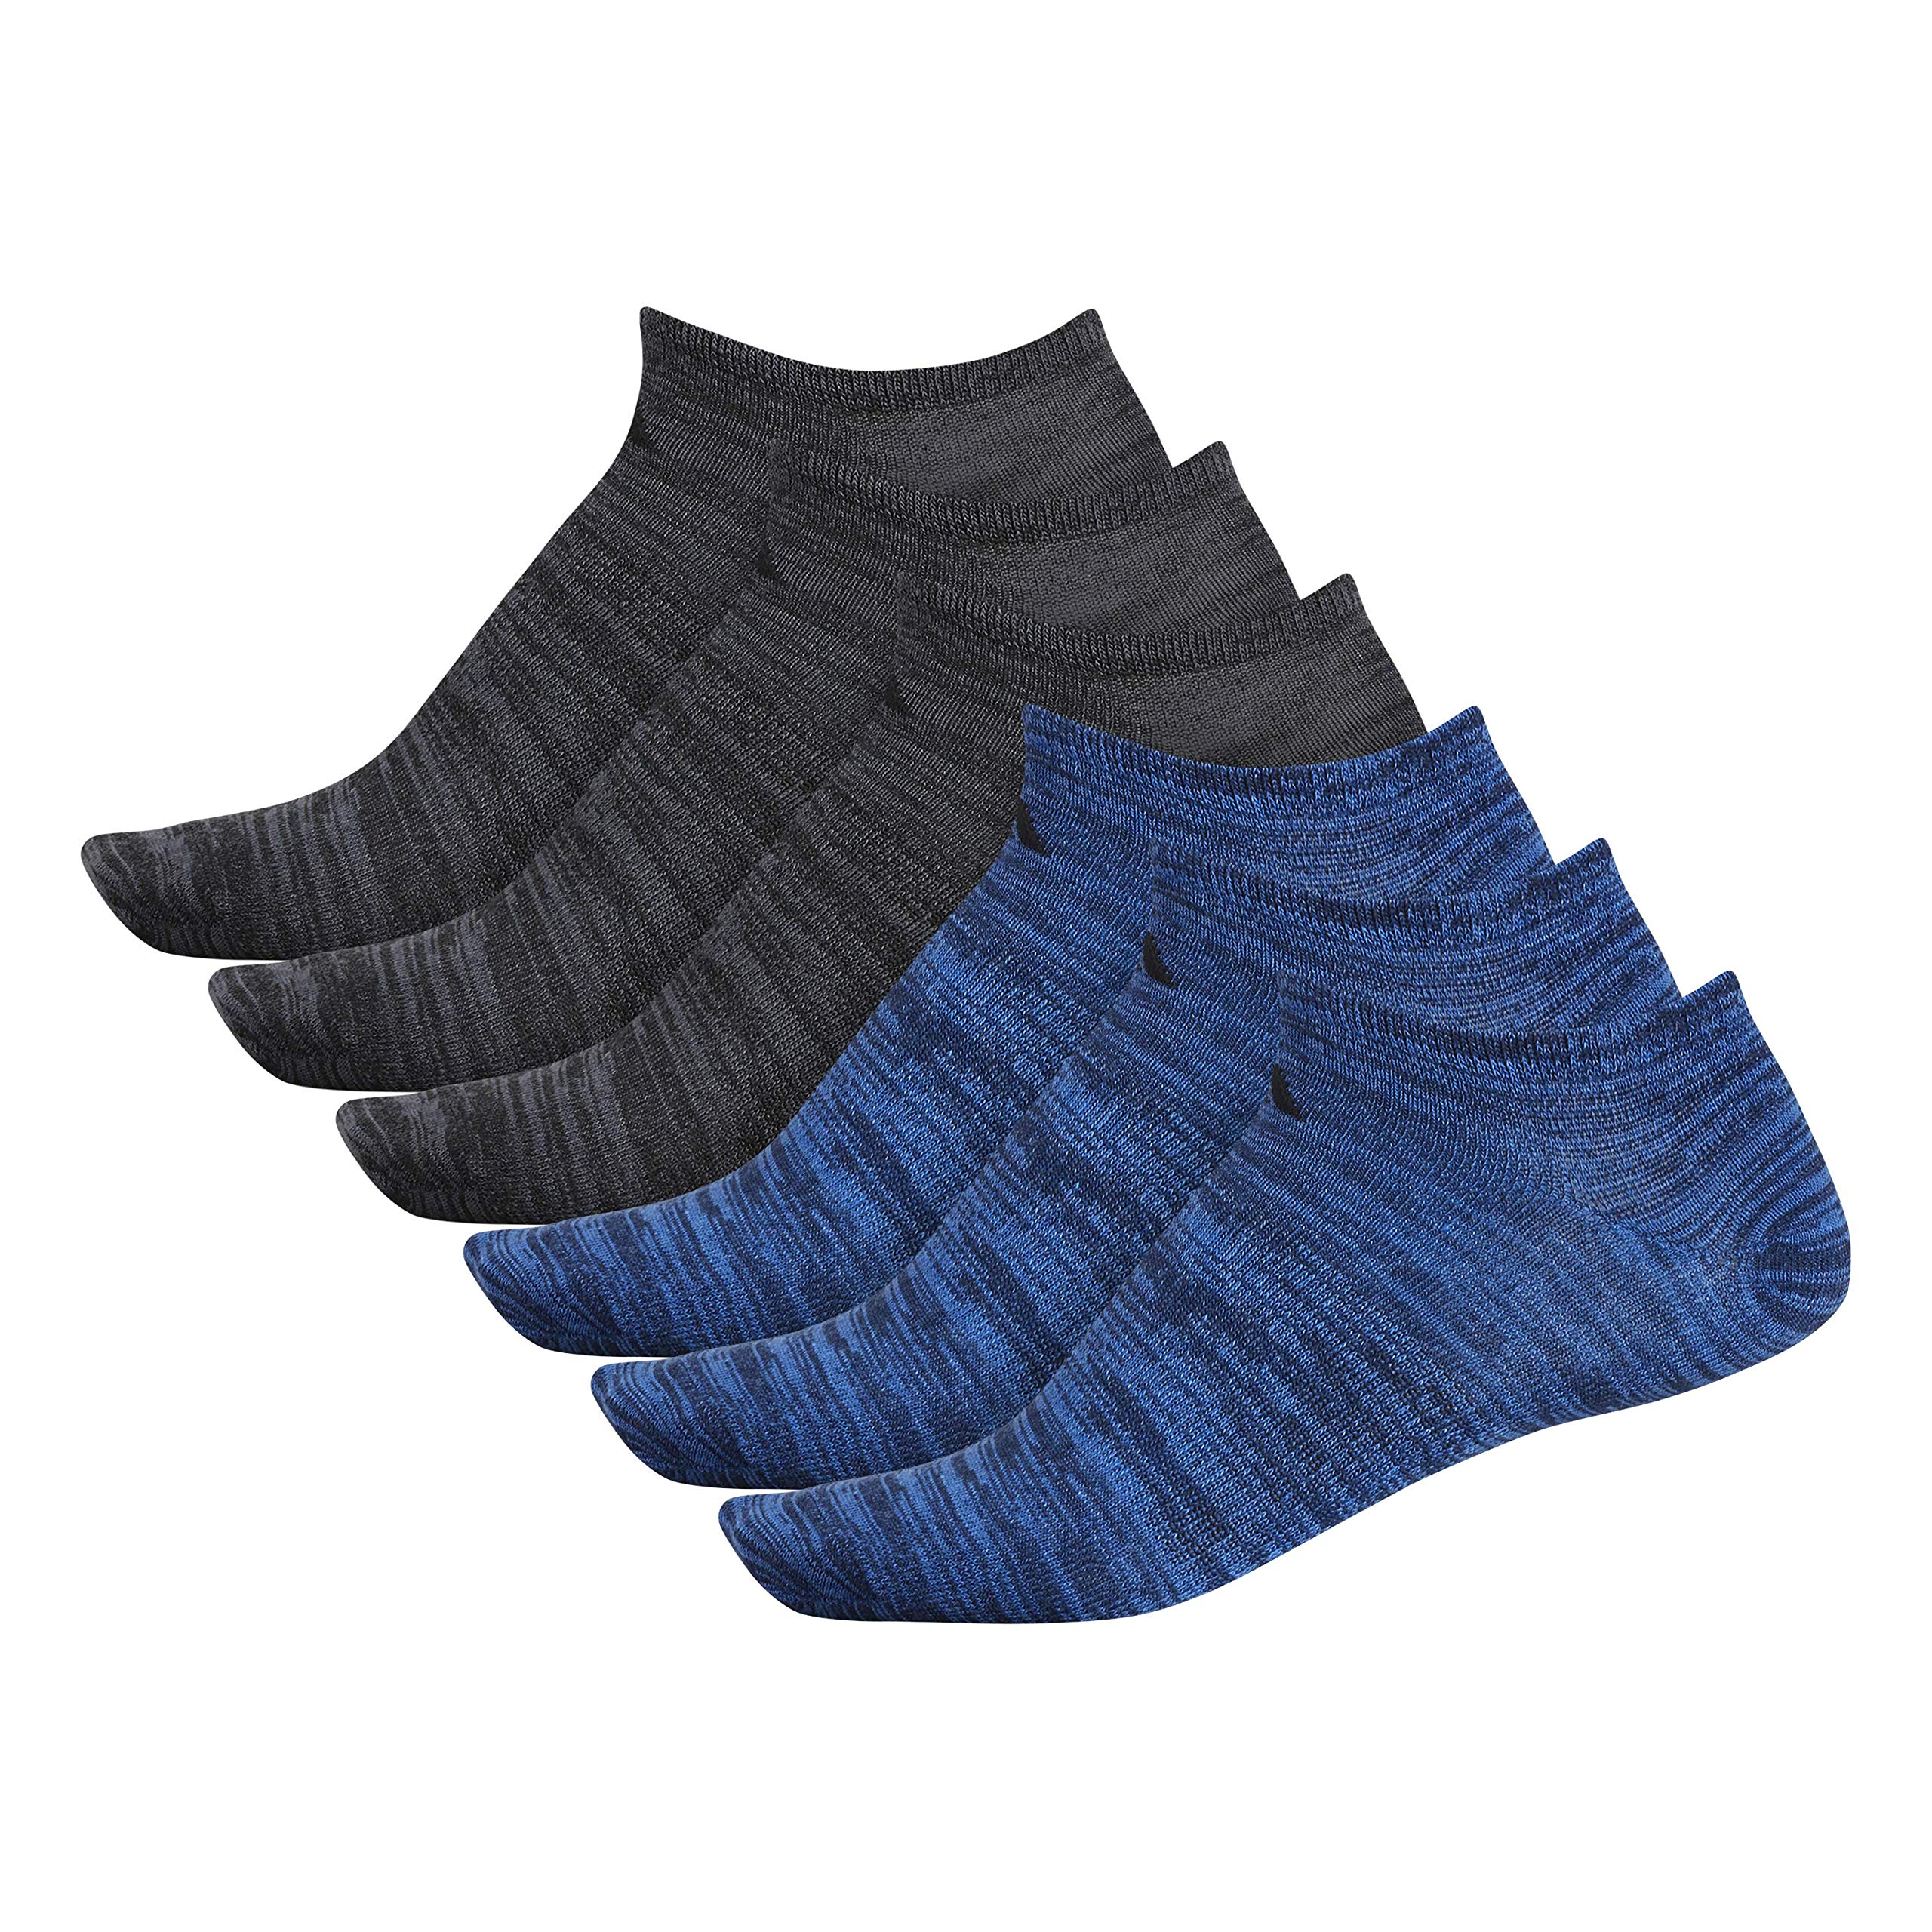 adidas Men's Superlite Low Cut Socks with arch compression (6-Pair),Collegiate Navy - True Blue Space Dye/ Black Black - On,XL, (Shoe Size 12-15) by adidas